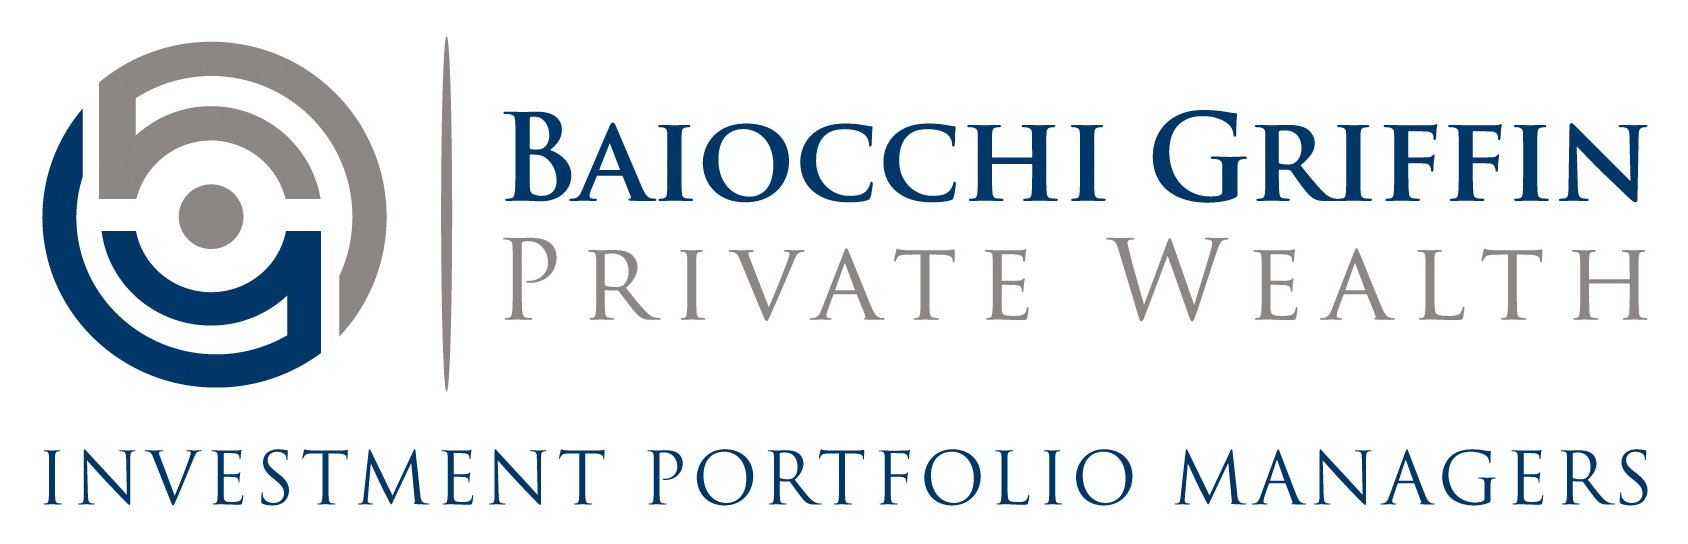 Welcome to Baiocchi Griffin Private Wealth